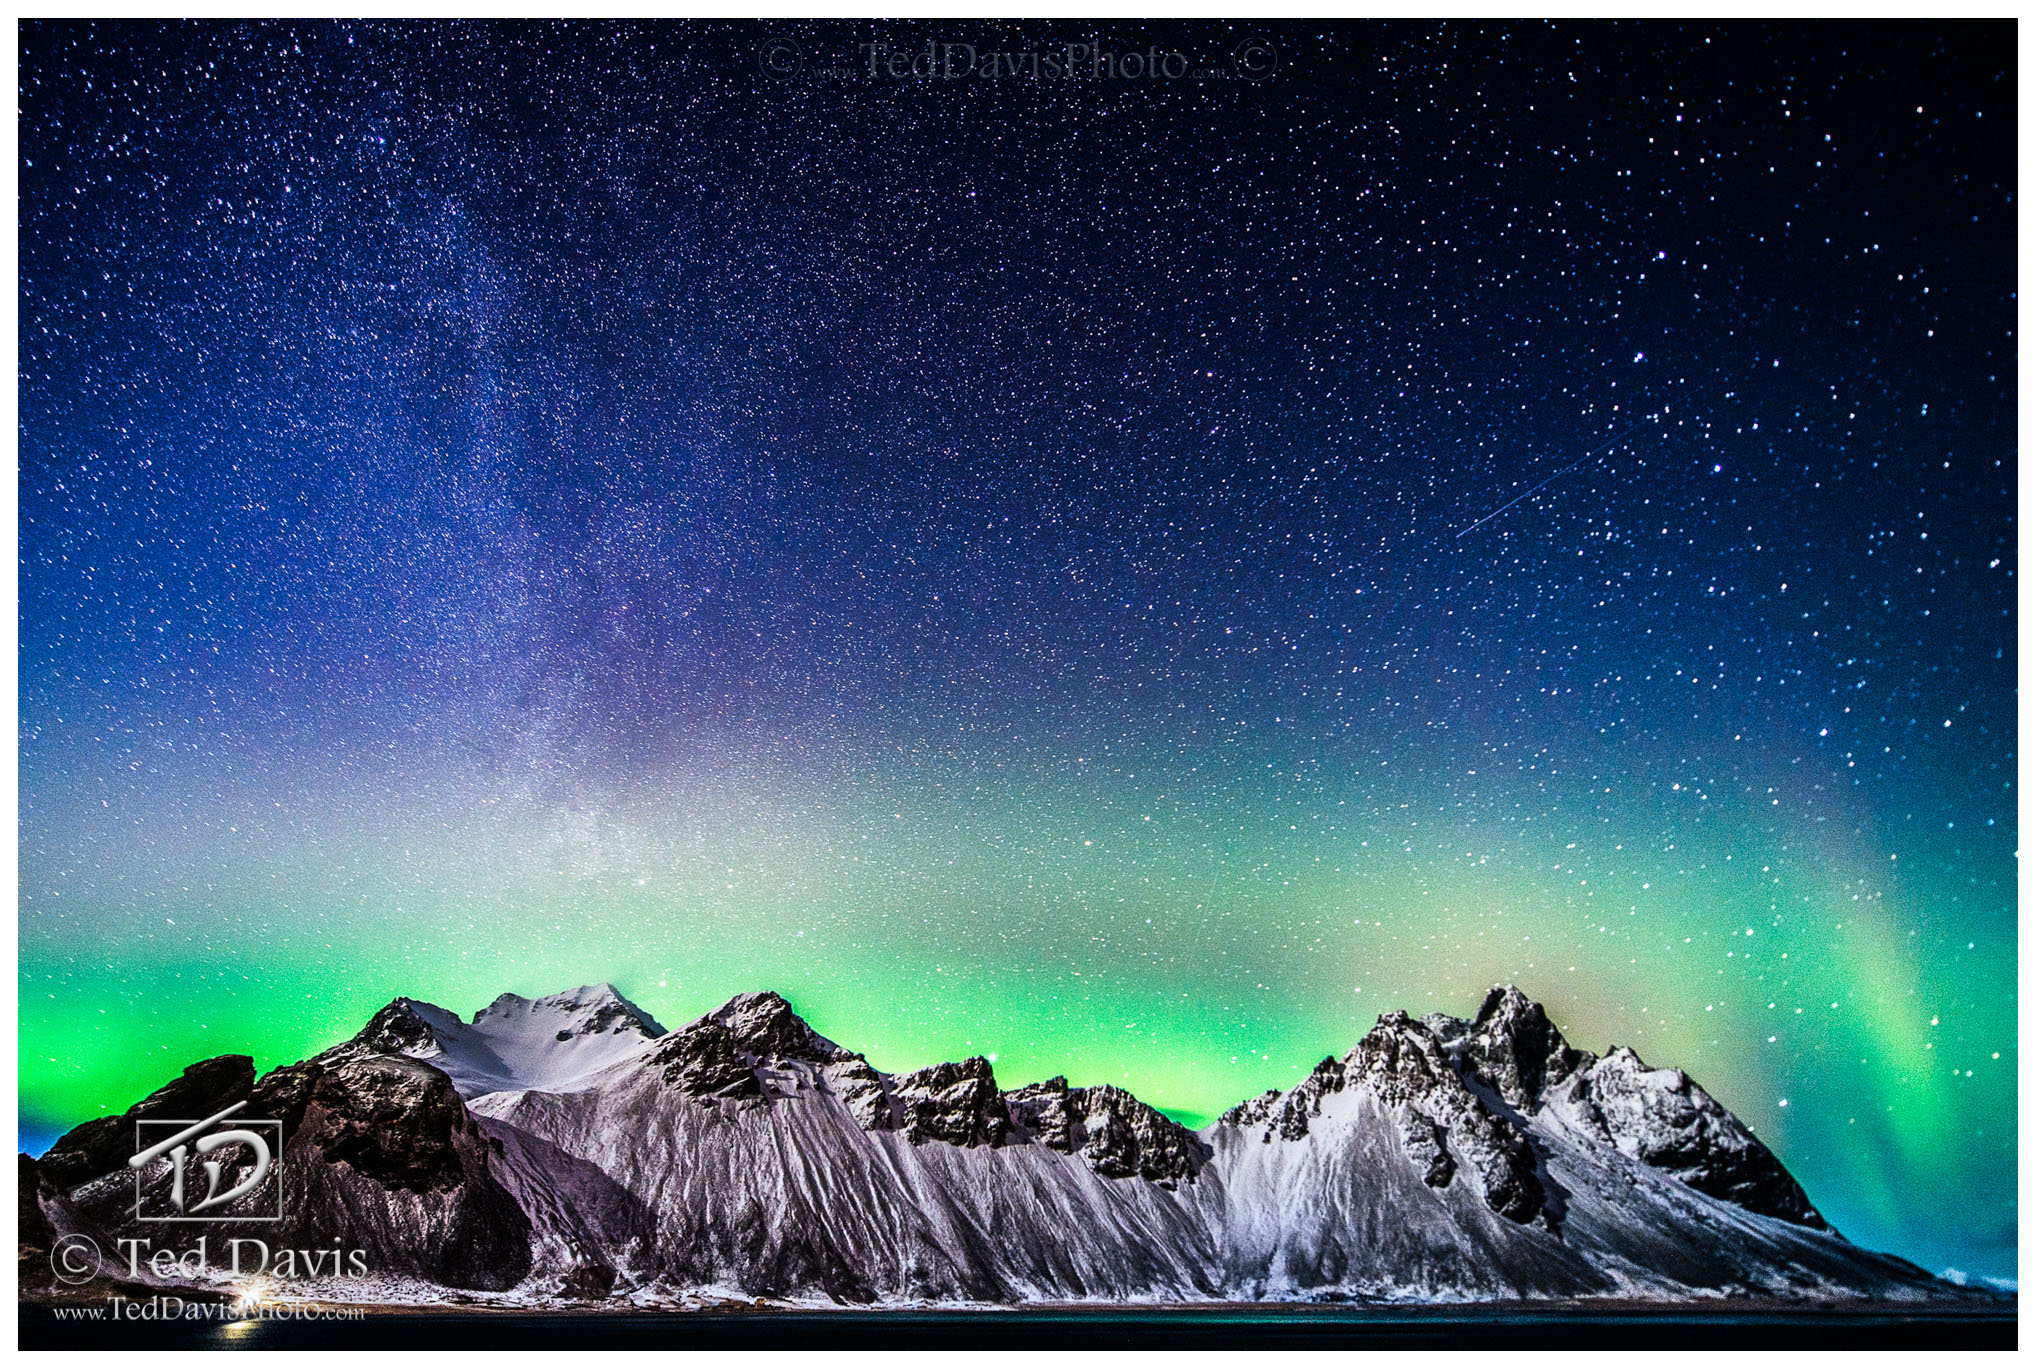 Iceland, Vesturhorn, northern lights, aurora, mountain, tidal, glow, milky way